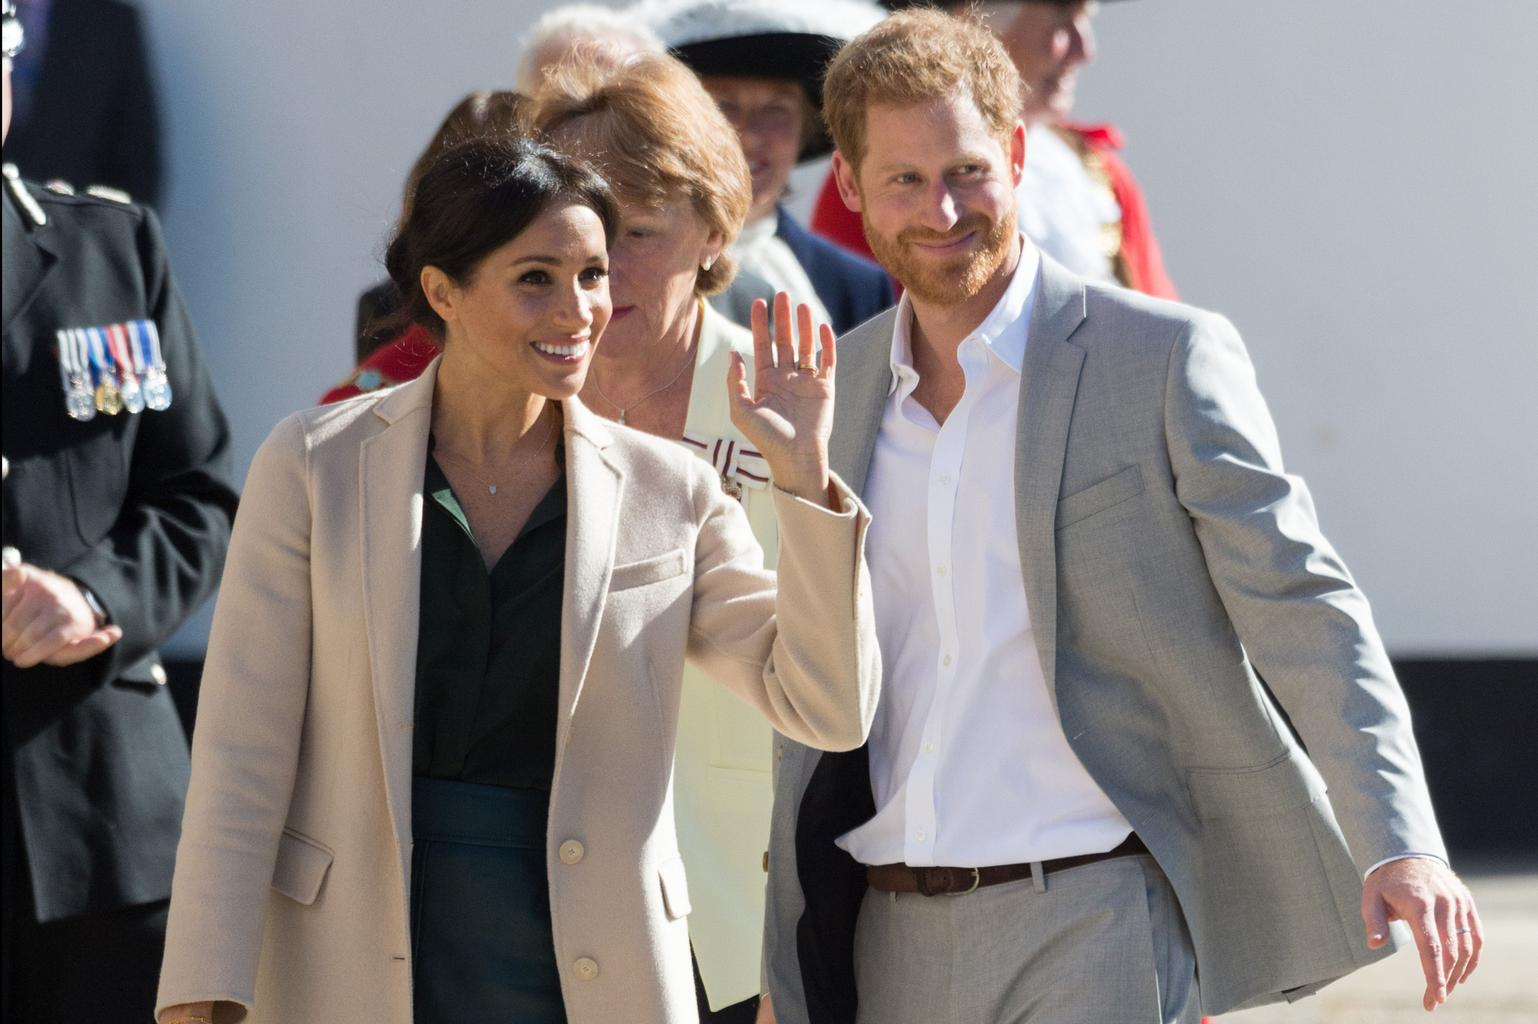 Harry and Meghan visit rural Australia